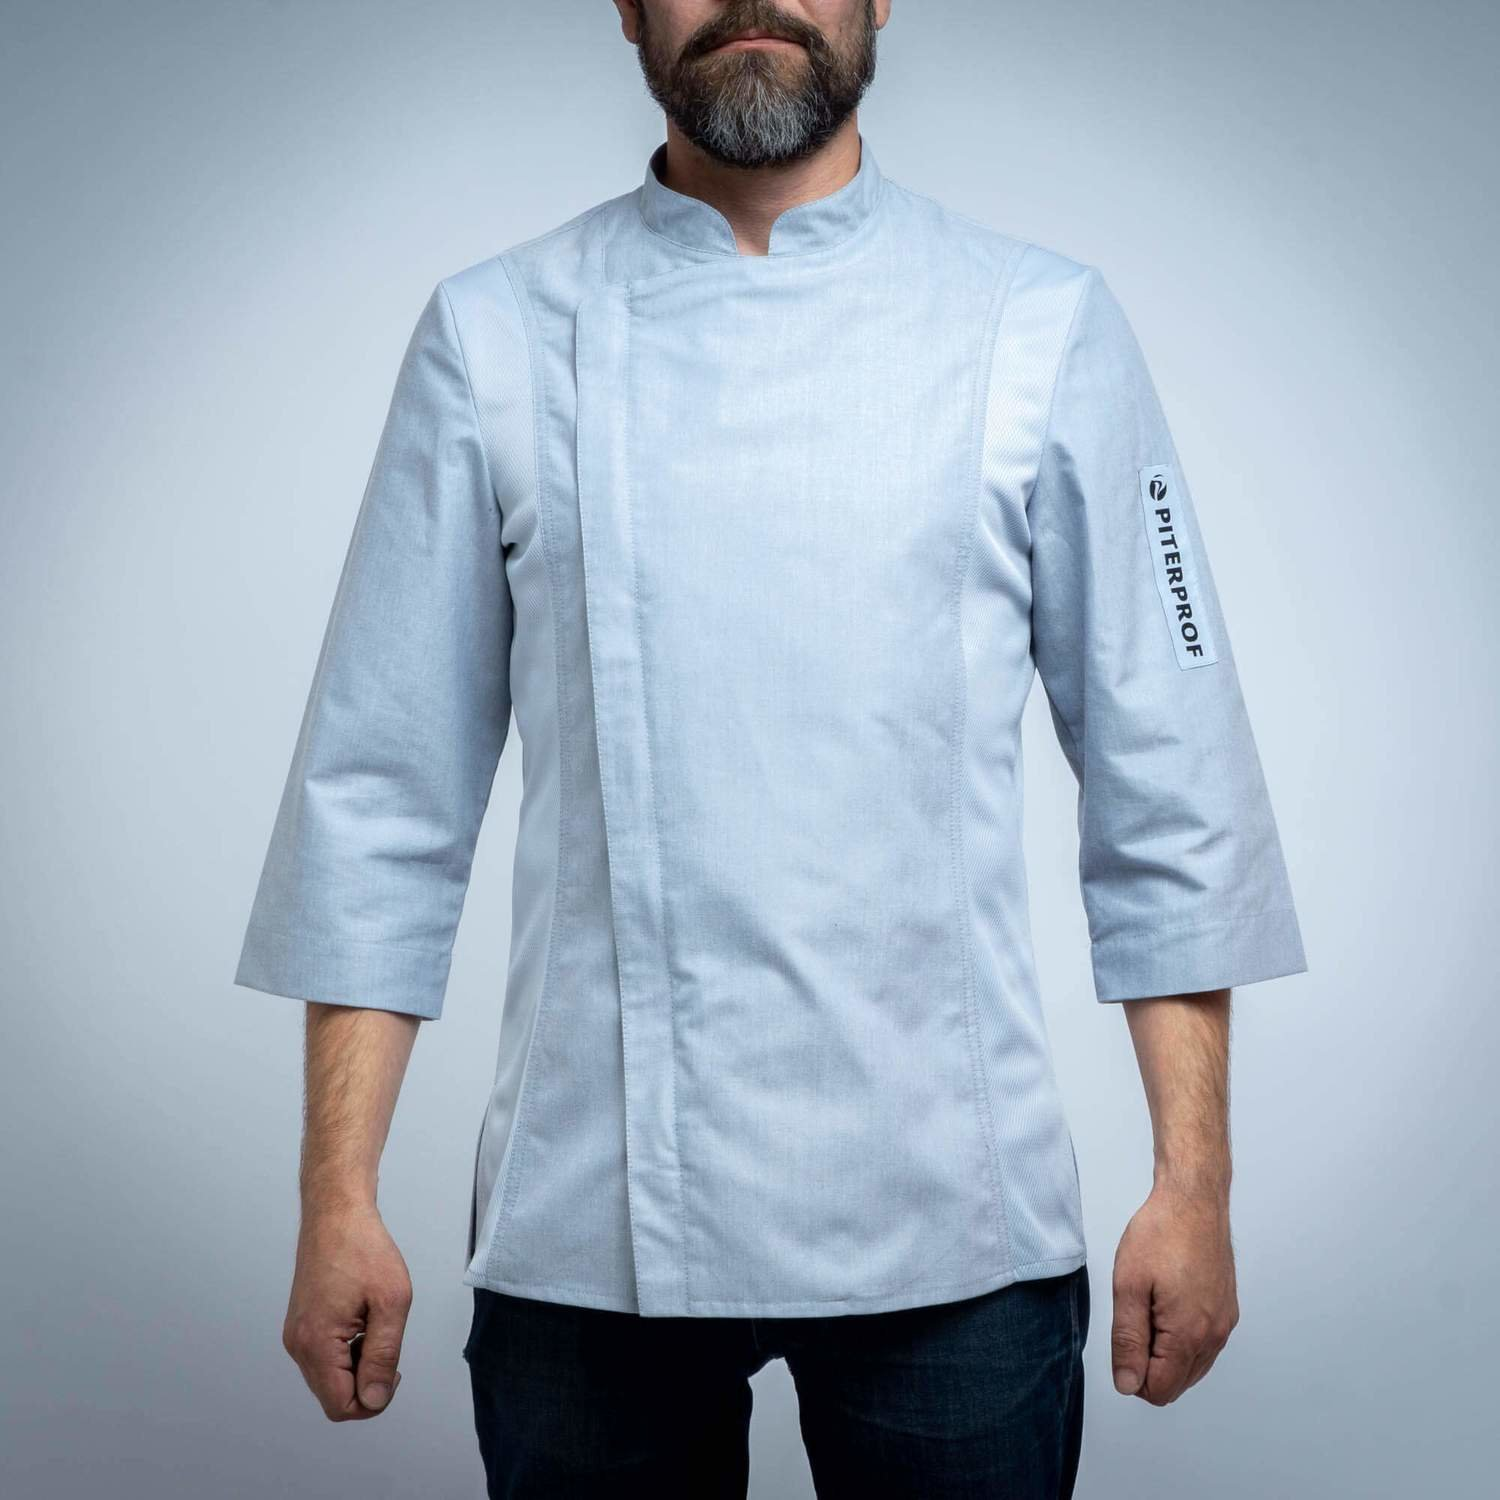 230GN - CHEF'S JACKET